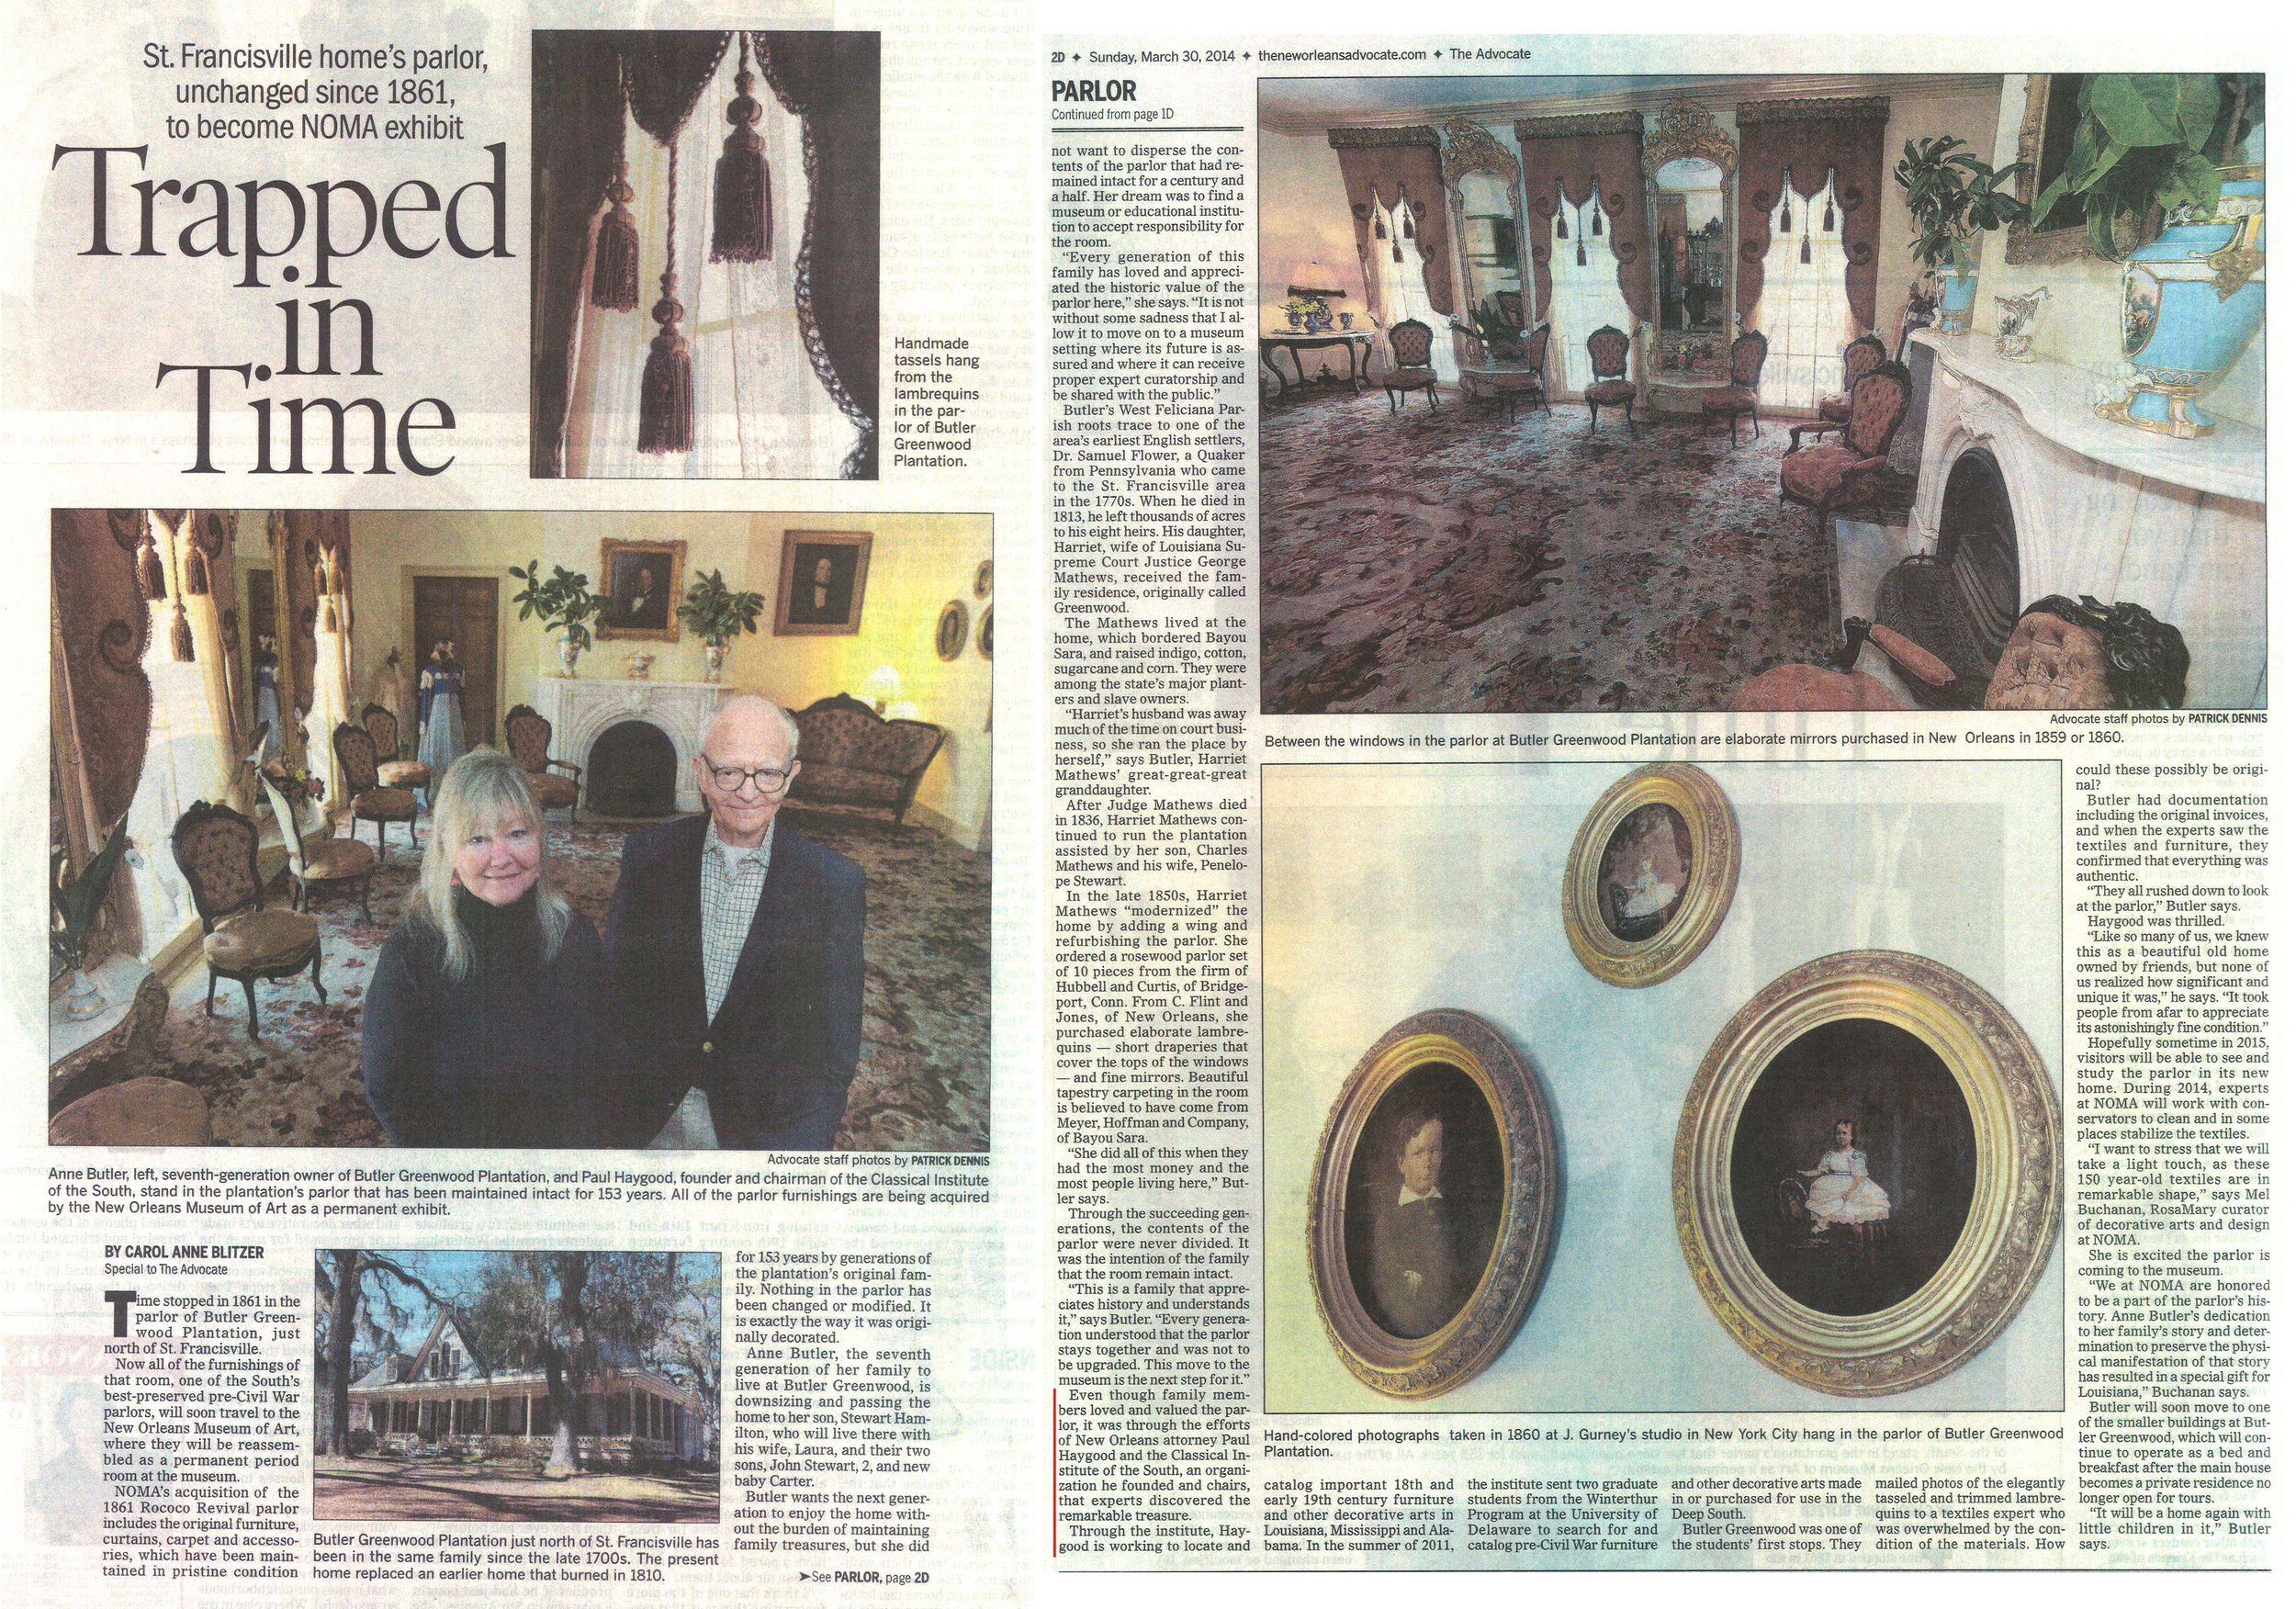 The New Orleans Advocate also covered NOMA's acquisition of the Butler Greenwood parlor and CIS' role in documention and preservaton of the room.An identical article appeared the same day in the Baton Rouge edition of the Advocate.  http://theadvocate.com/features/people/8520770-123/st-francisville-homes-parlor-to